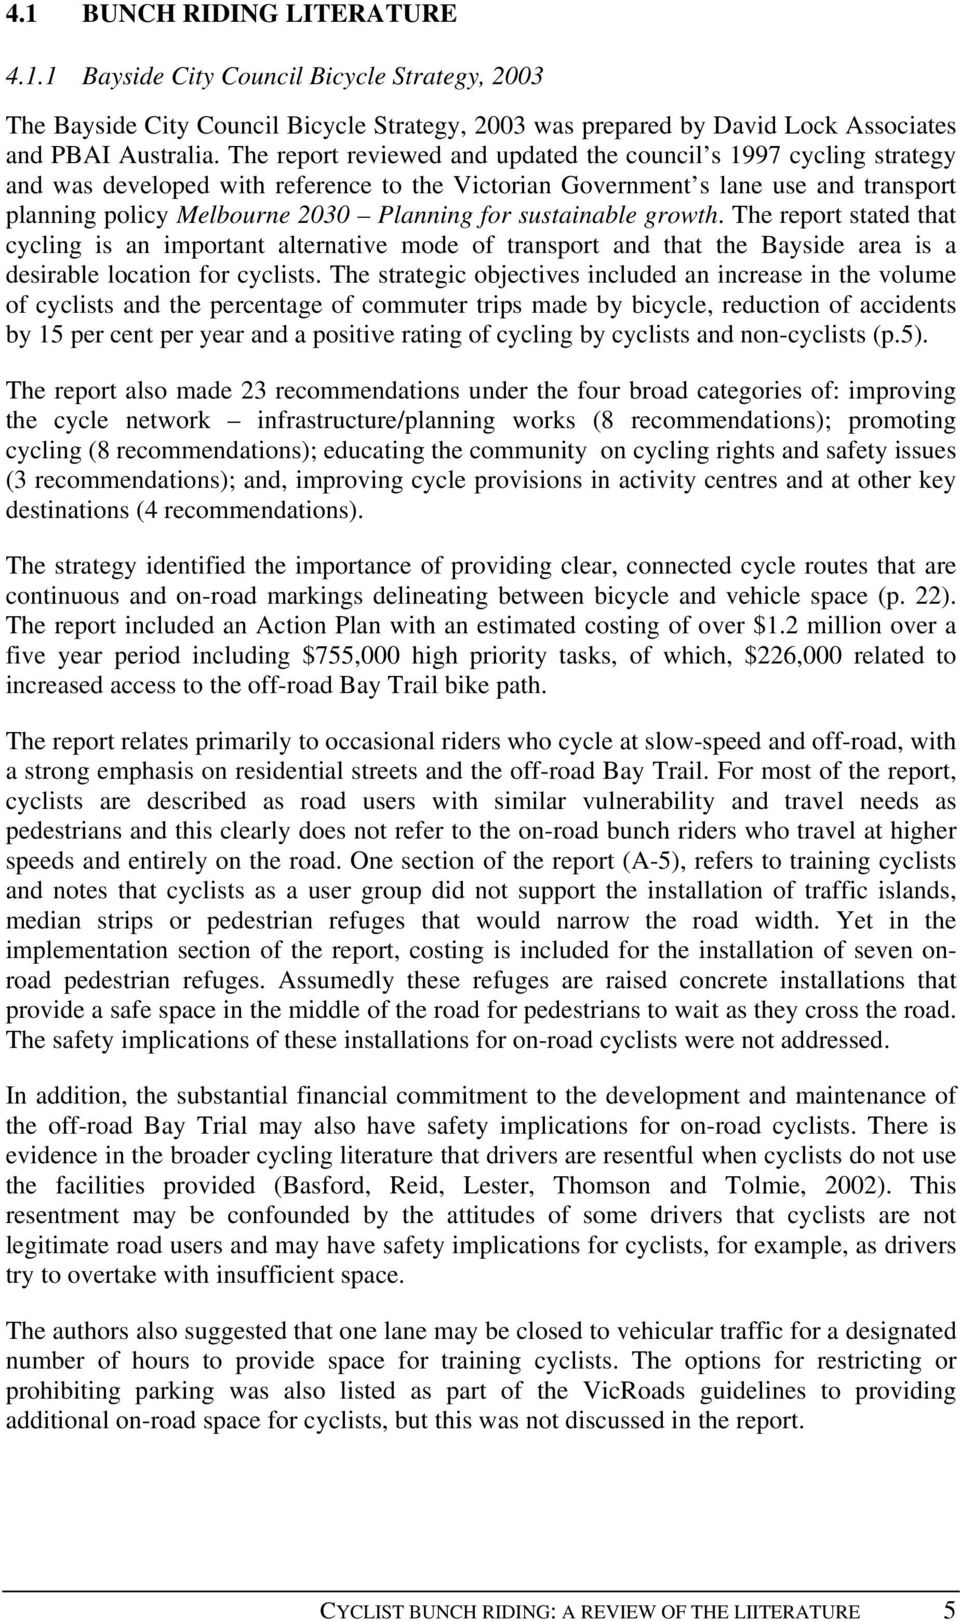 sustainable growth. The report stated that cycling is an important alternative mode of transport and that the Bayside area is a desirable location for cyclists.